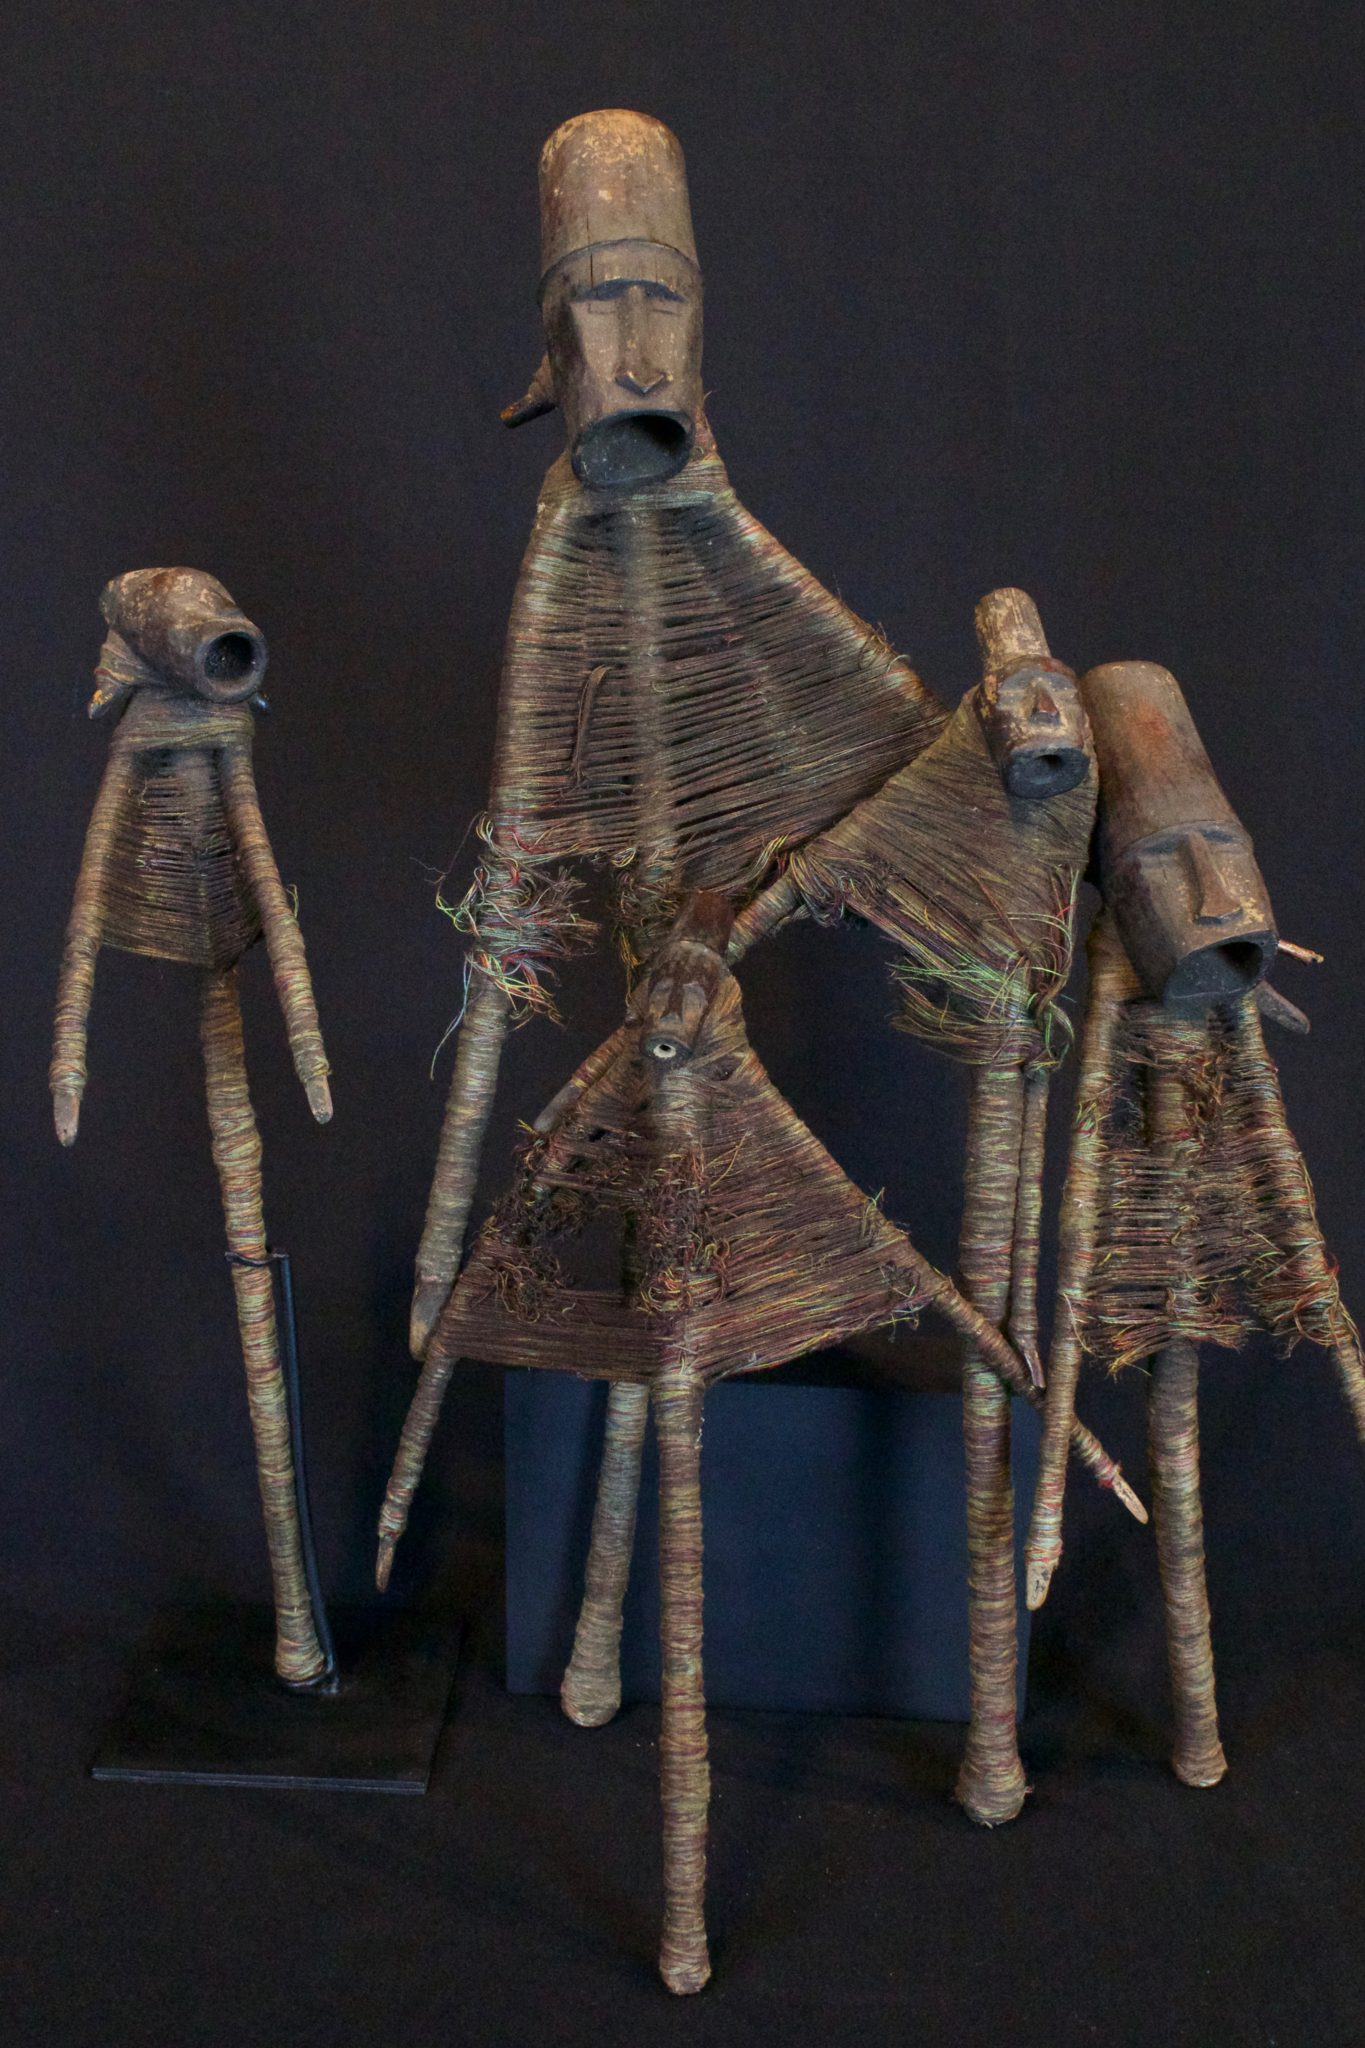 "Magic Protection Figures East Flores Island, Lesser Sunda Islands, Indonesia, Mid 20th c, Wood, bamboo, thread. Kept in household kitchen to protect the home. Dimensions: 10"" to 17"" tall; $135. to $225."